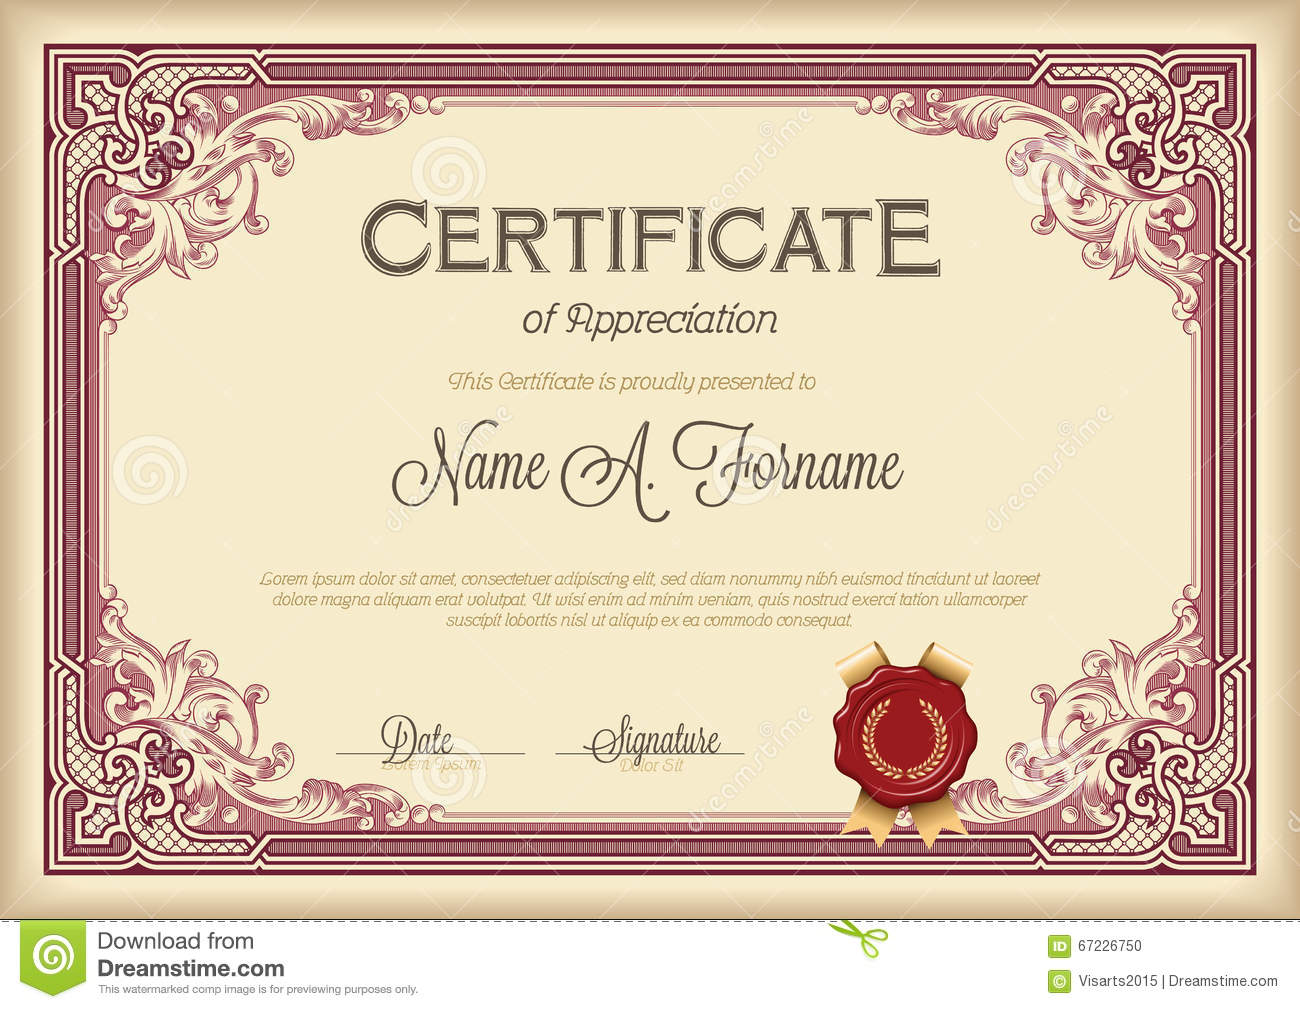 Certificate Of Appreciation Vintage Floral Frame. Stock Vector ...